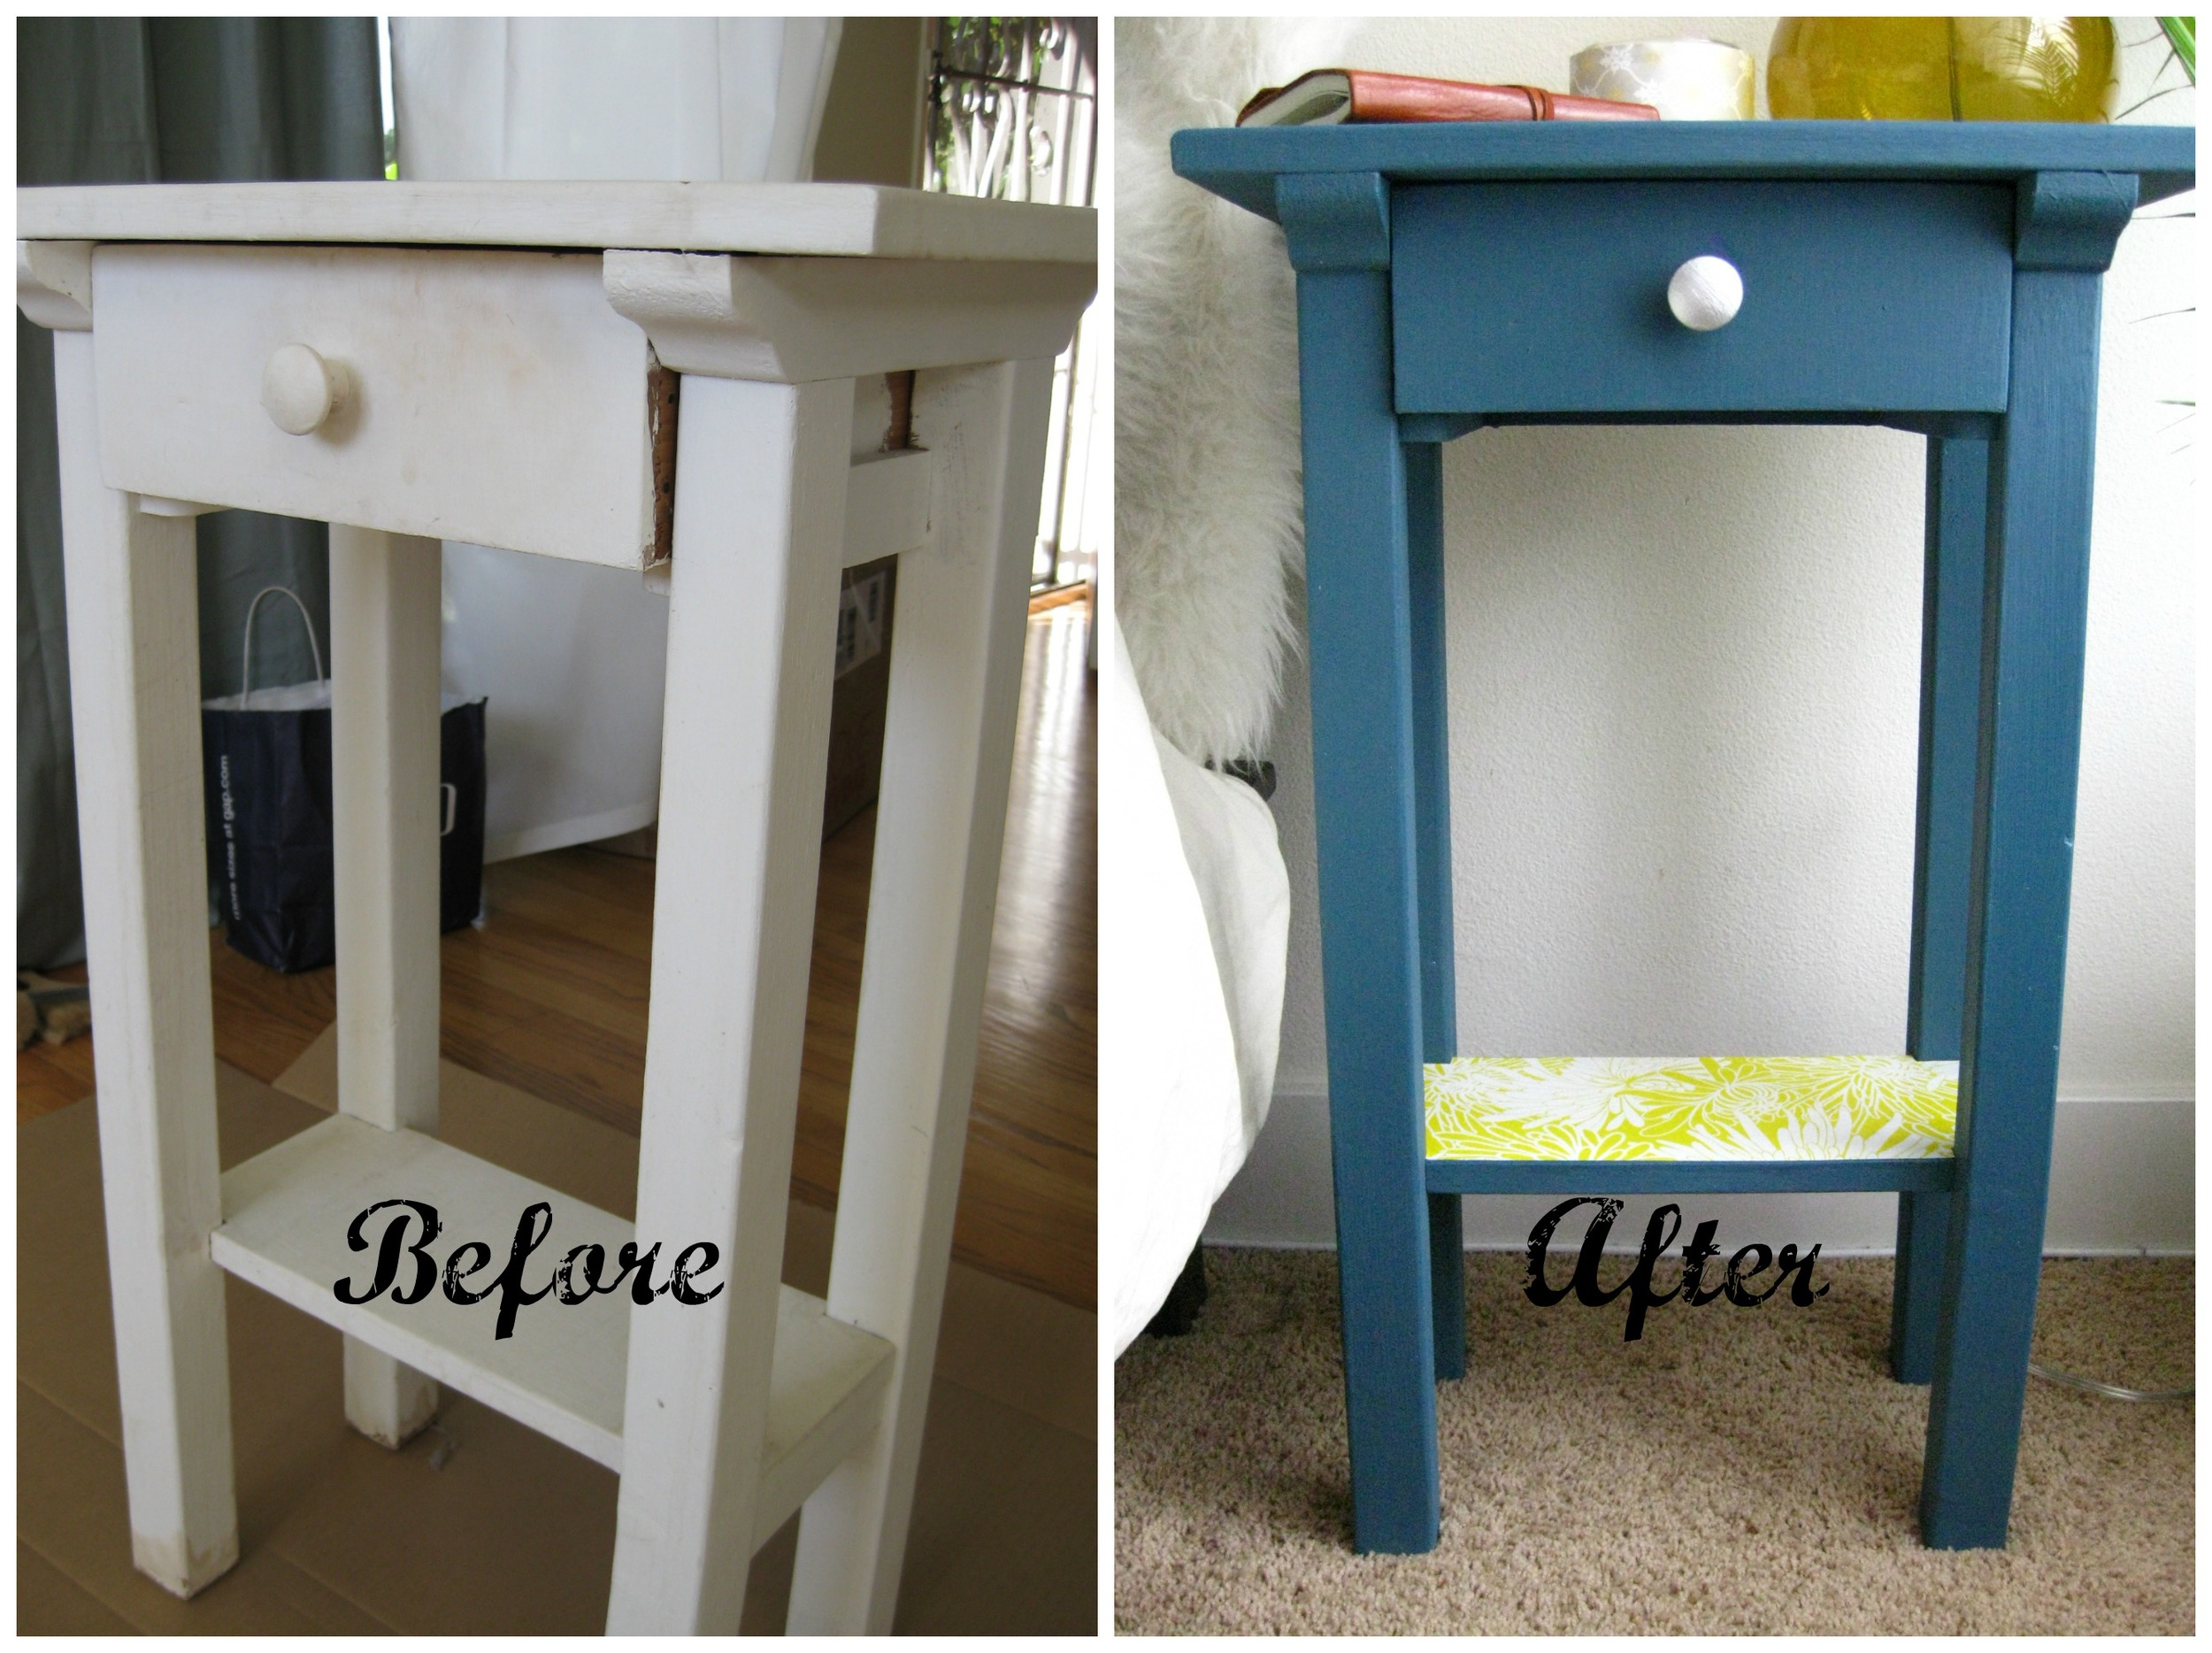 Nightstand before and after PicMonkey Collage